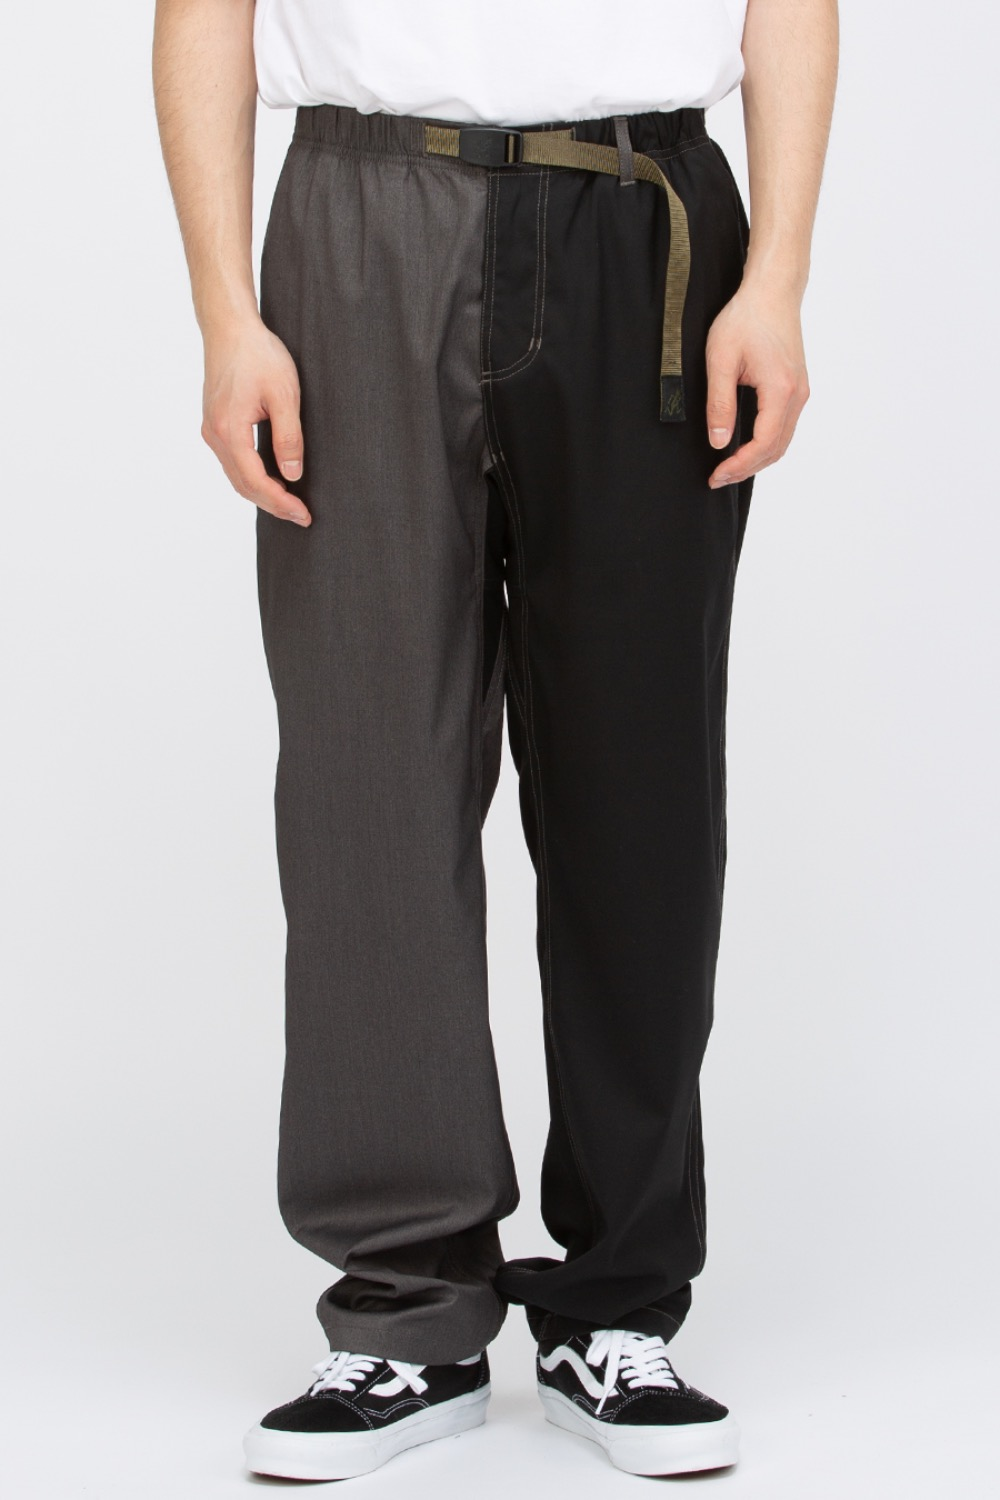 EASTLOGUE X GRAMICCI PANTS TWOTONE